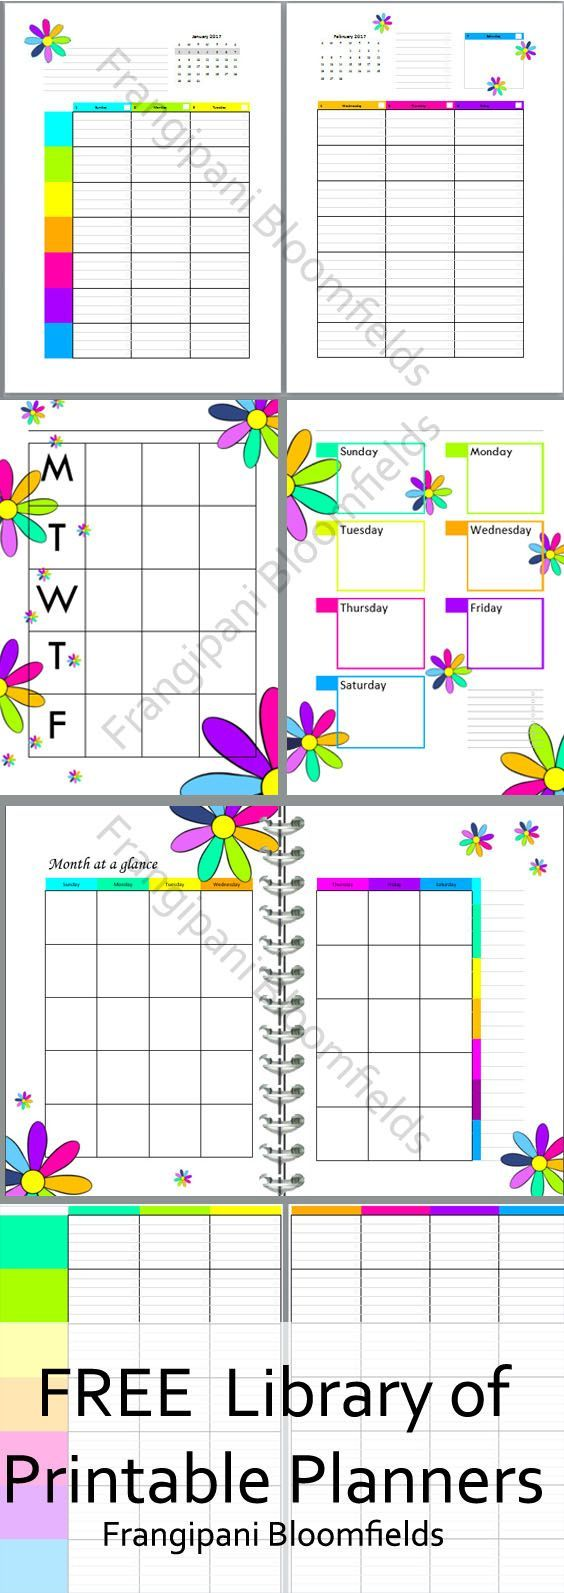 Free Homeschool Planner | FInancial Planner | Blog Planner ...